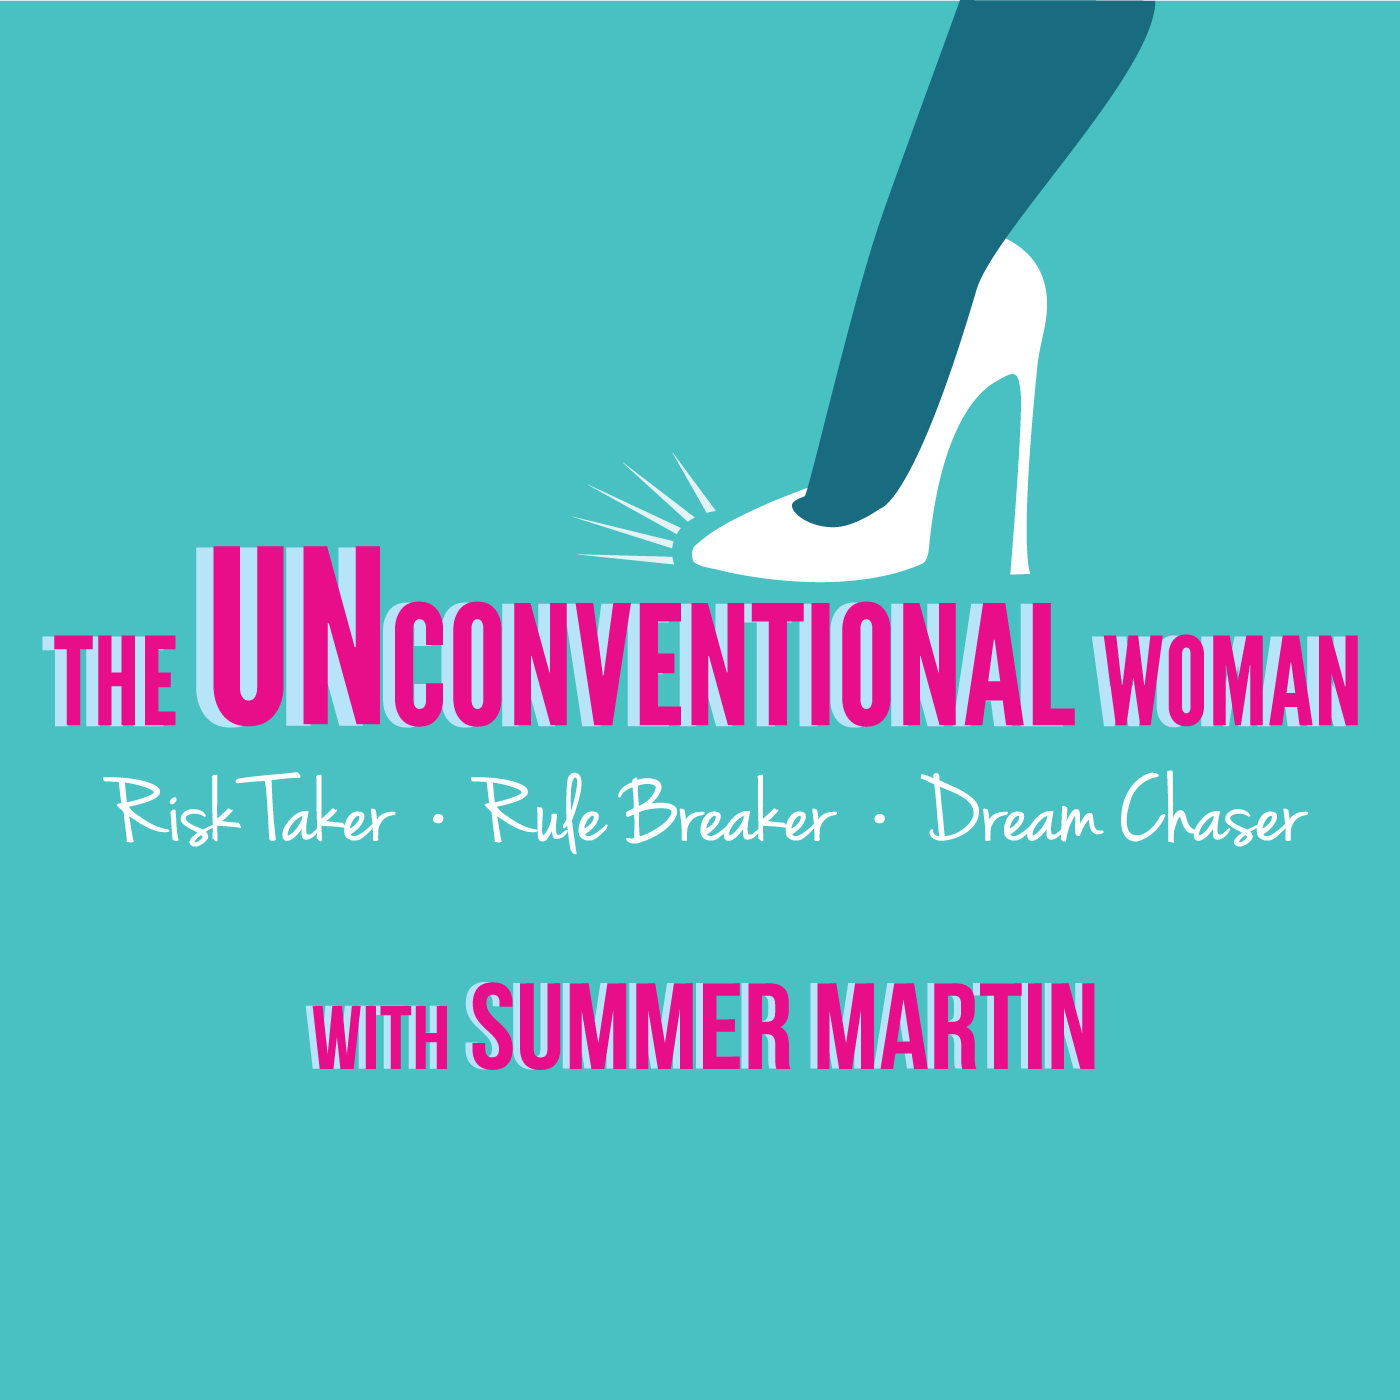 Diary of an Unconventional Woman